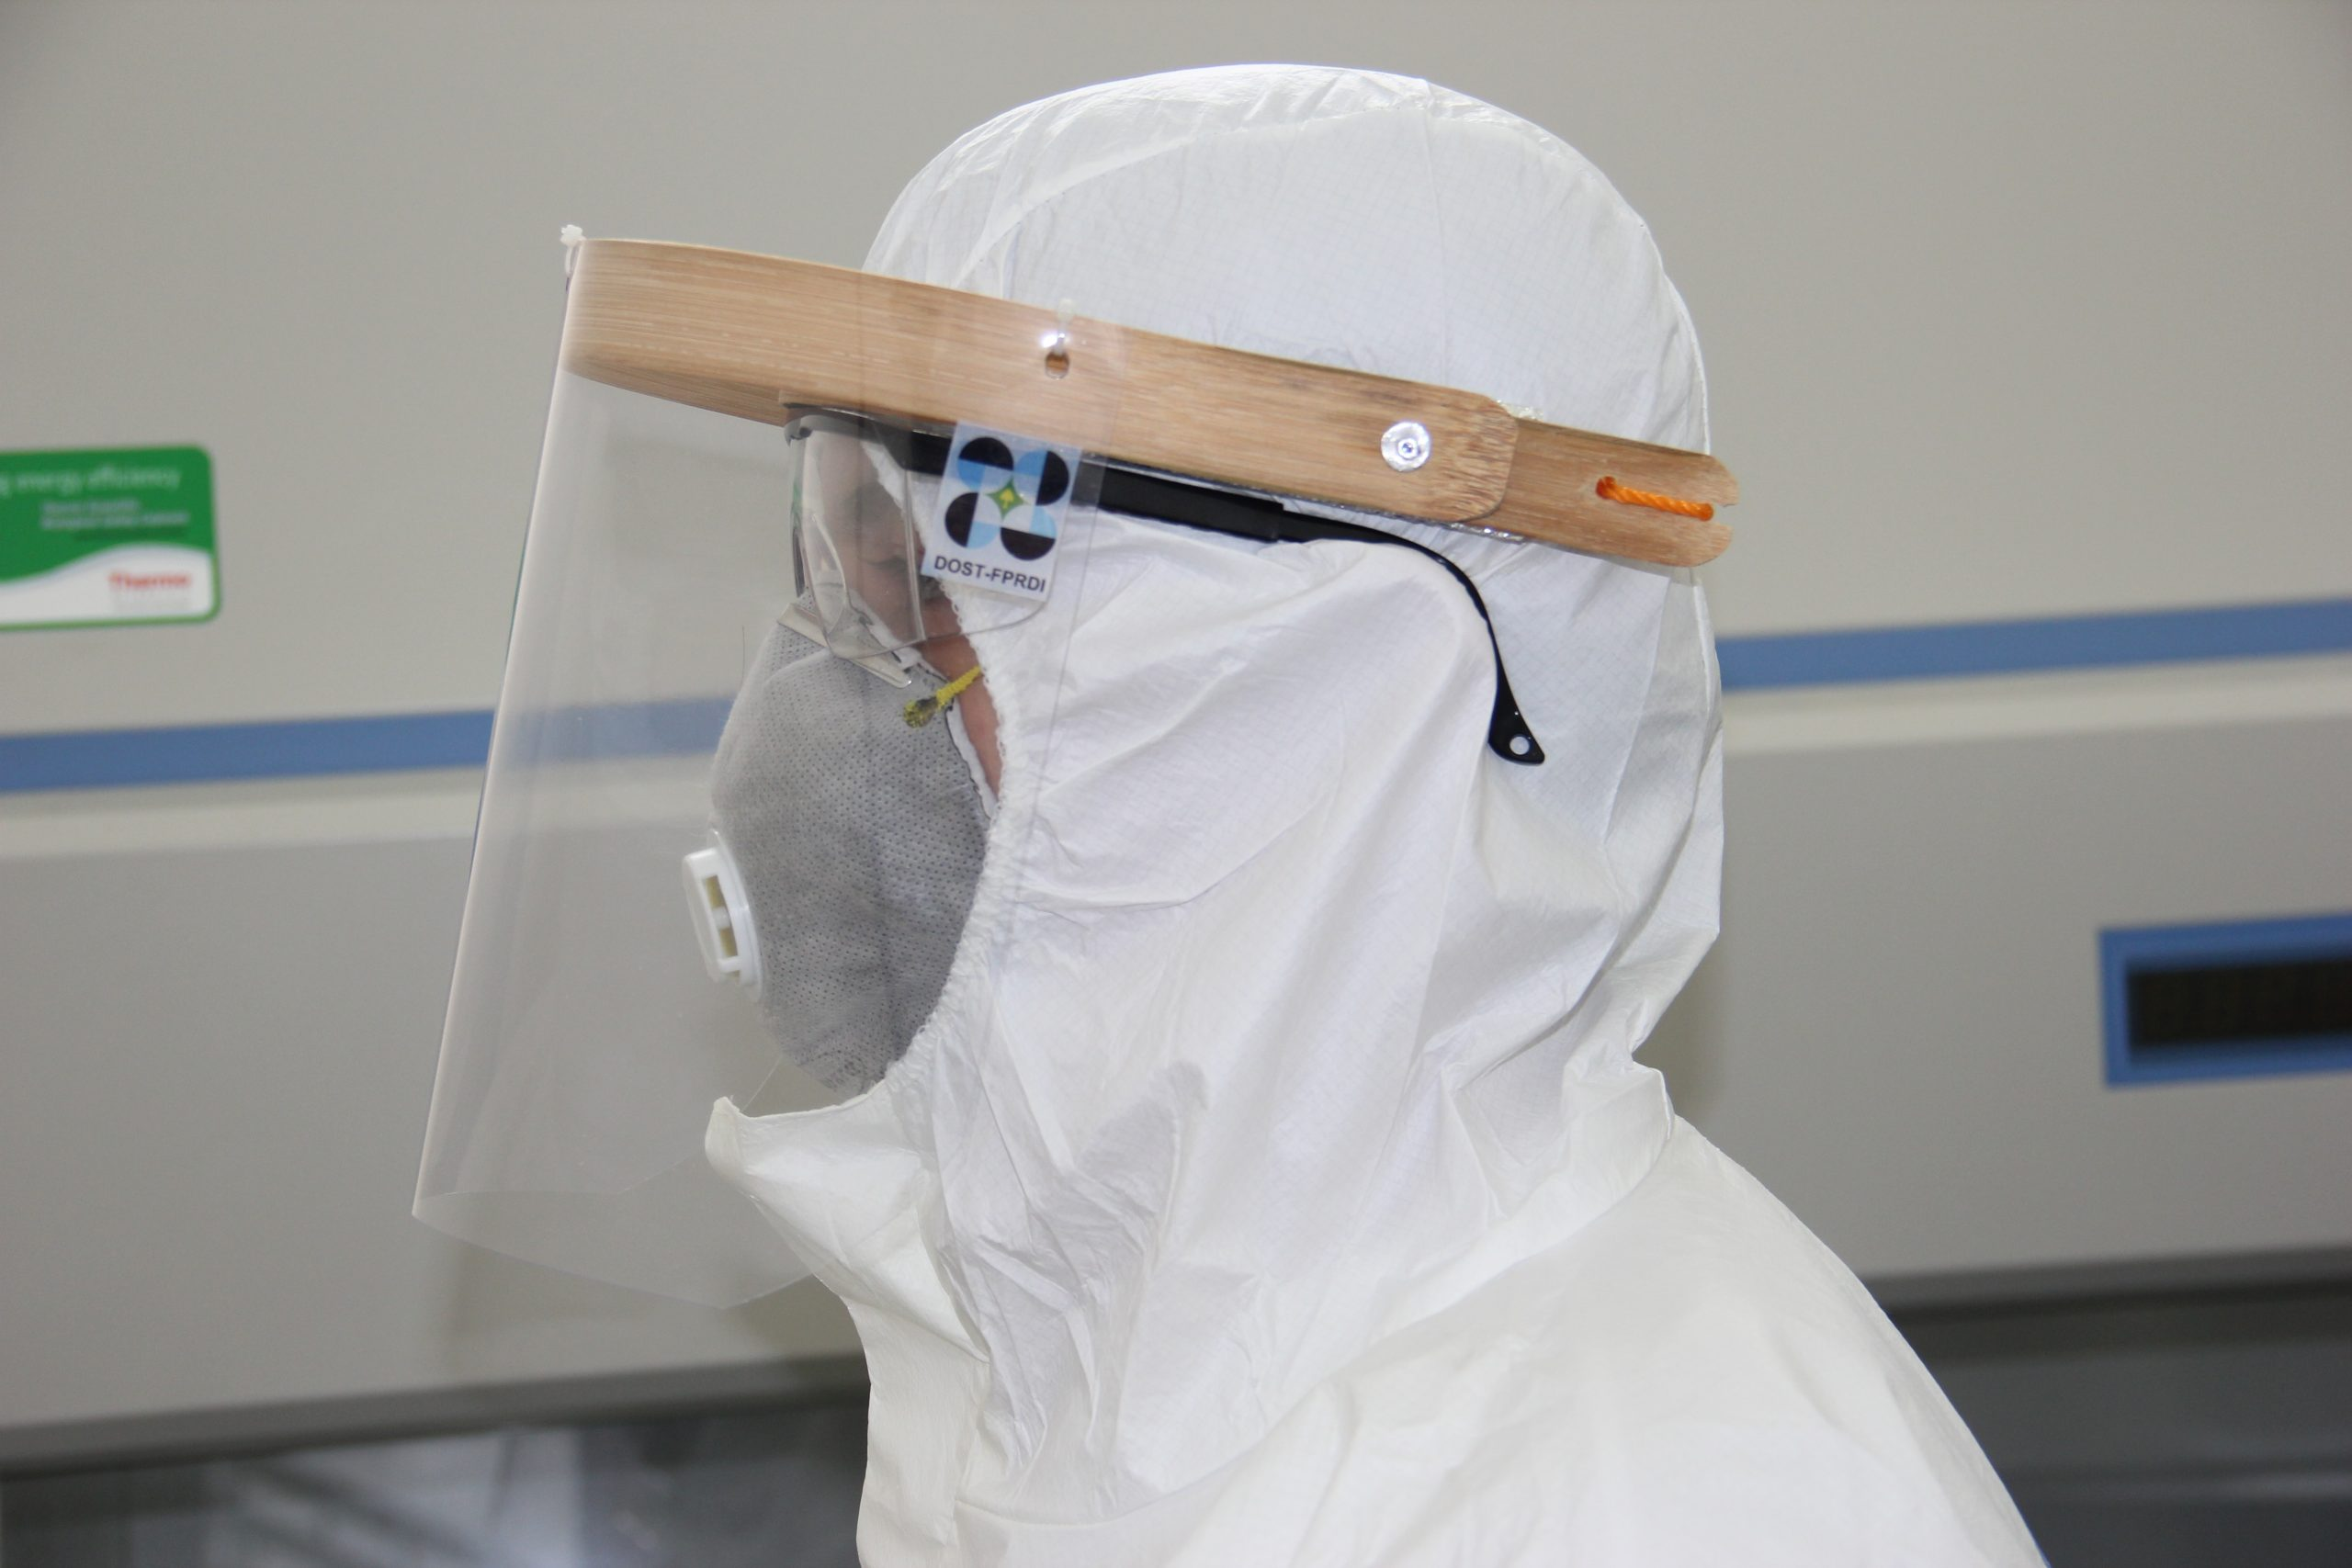 DOST PPE face shields